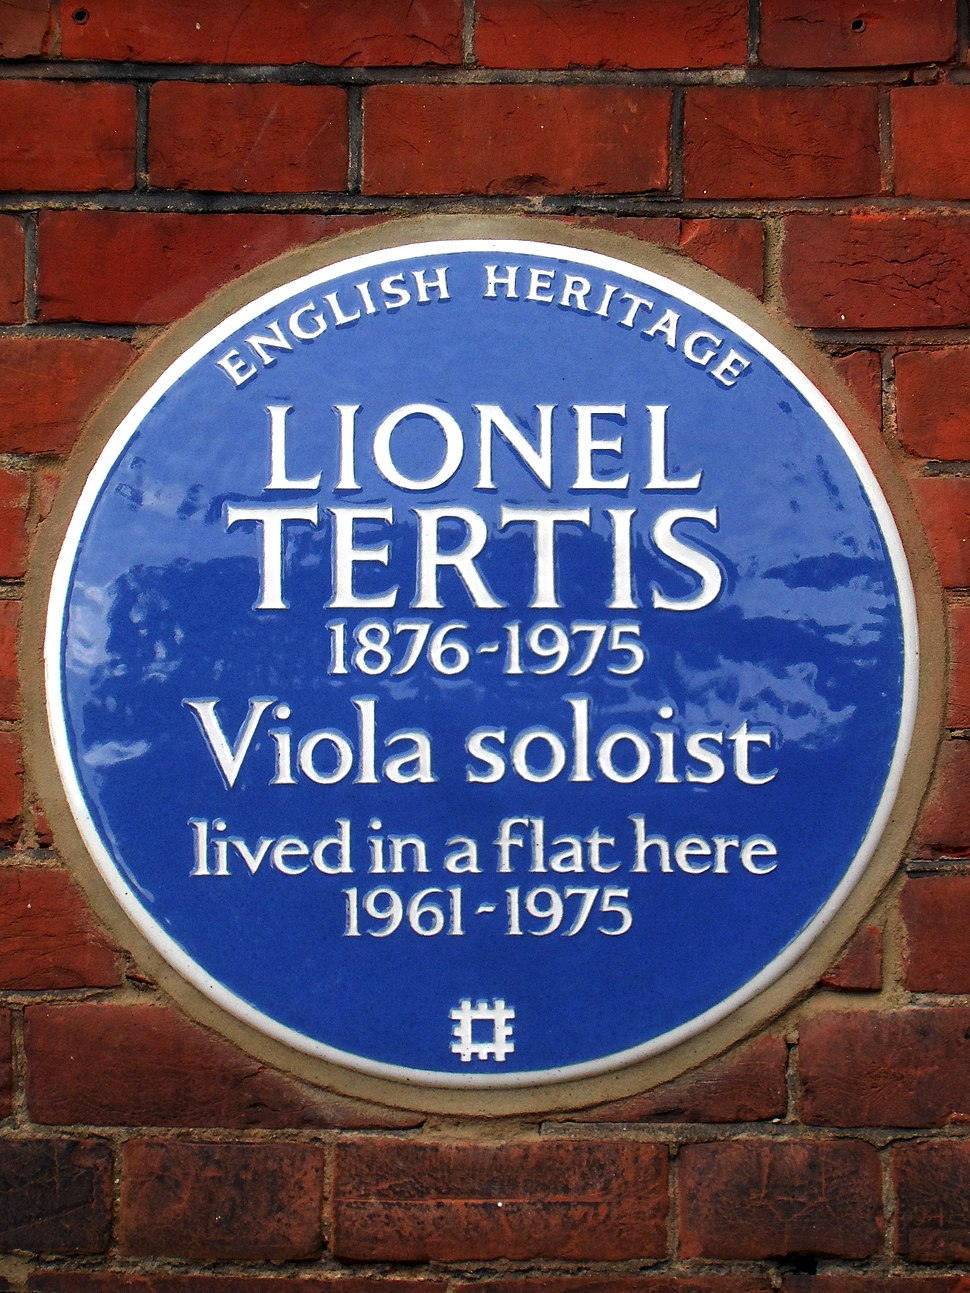 Lionel Tertis 1876-1975 viola soloist lived in a flat here 1961-1975